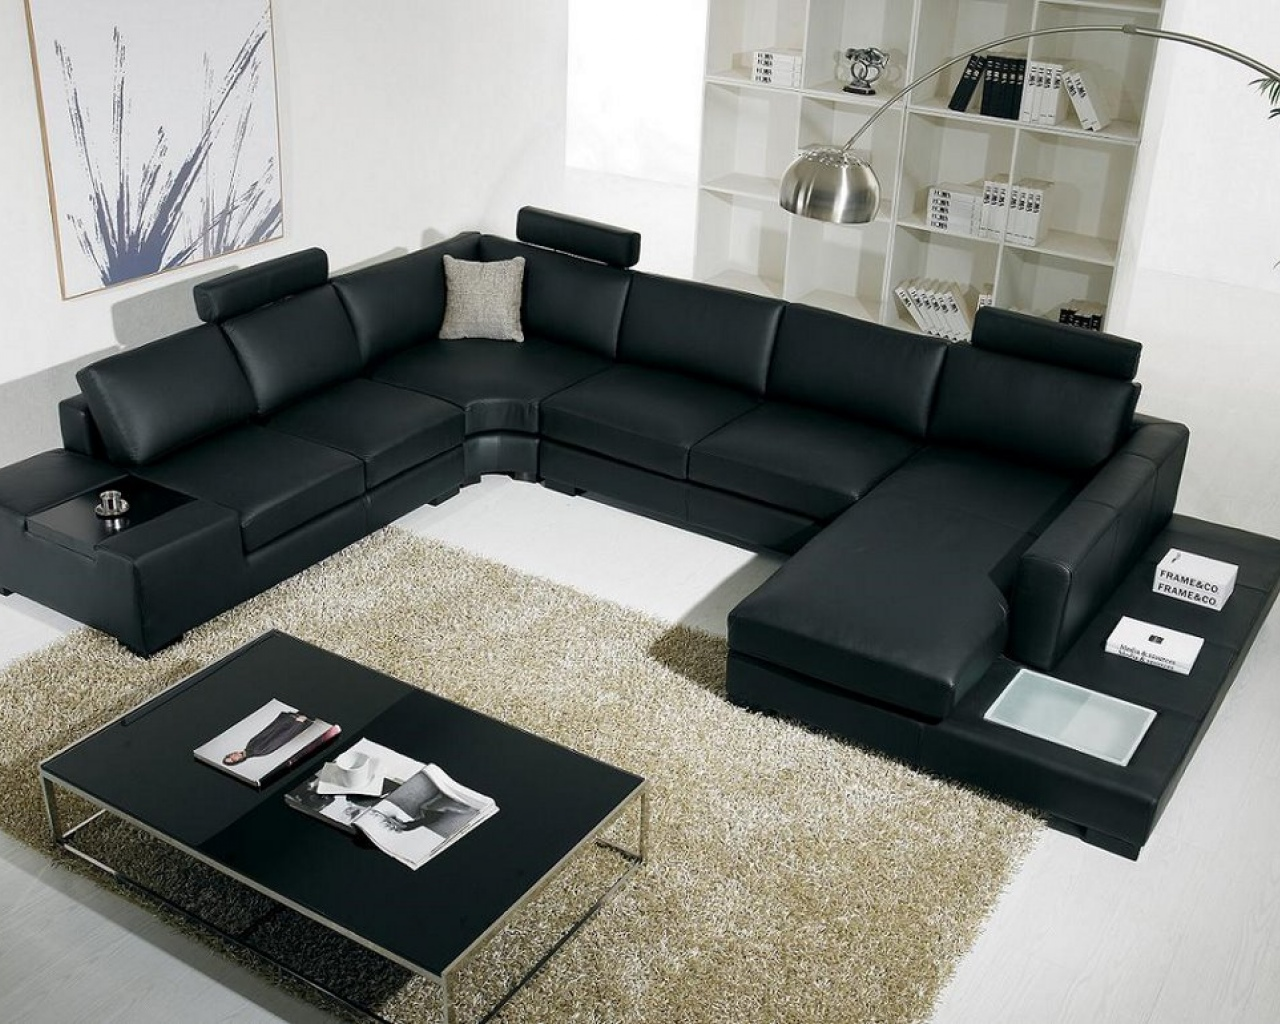 amazing and elegant black Sectional Couches on white ceramic floor plus cream carpet plus glass table for inspiring family room decor ideas